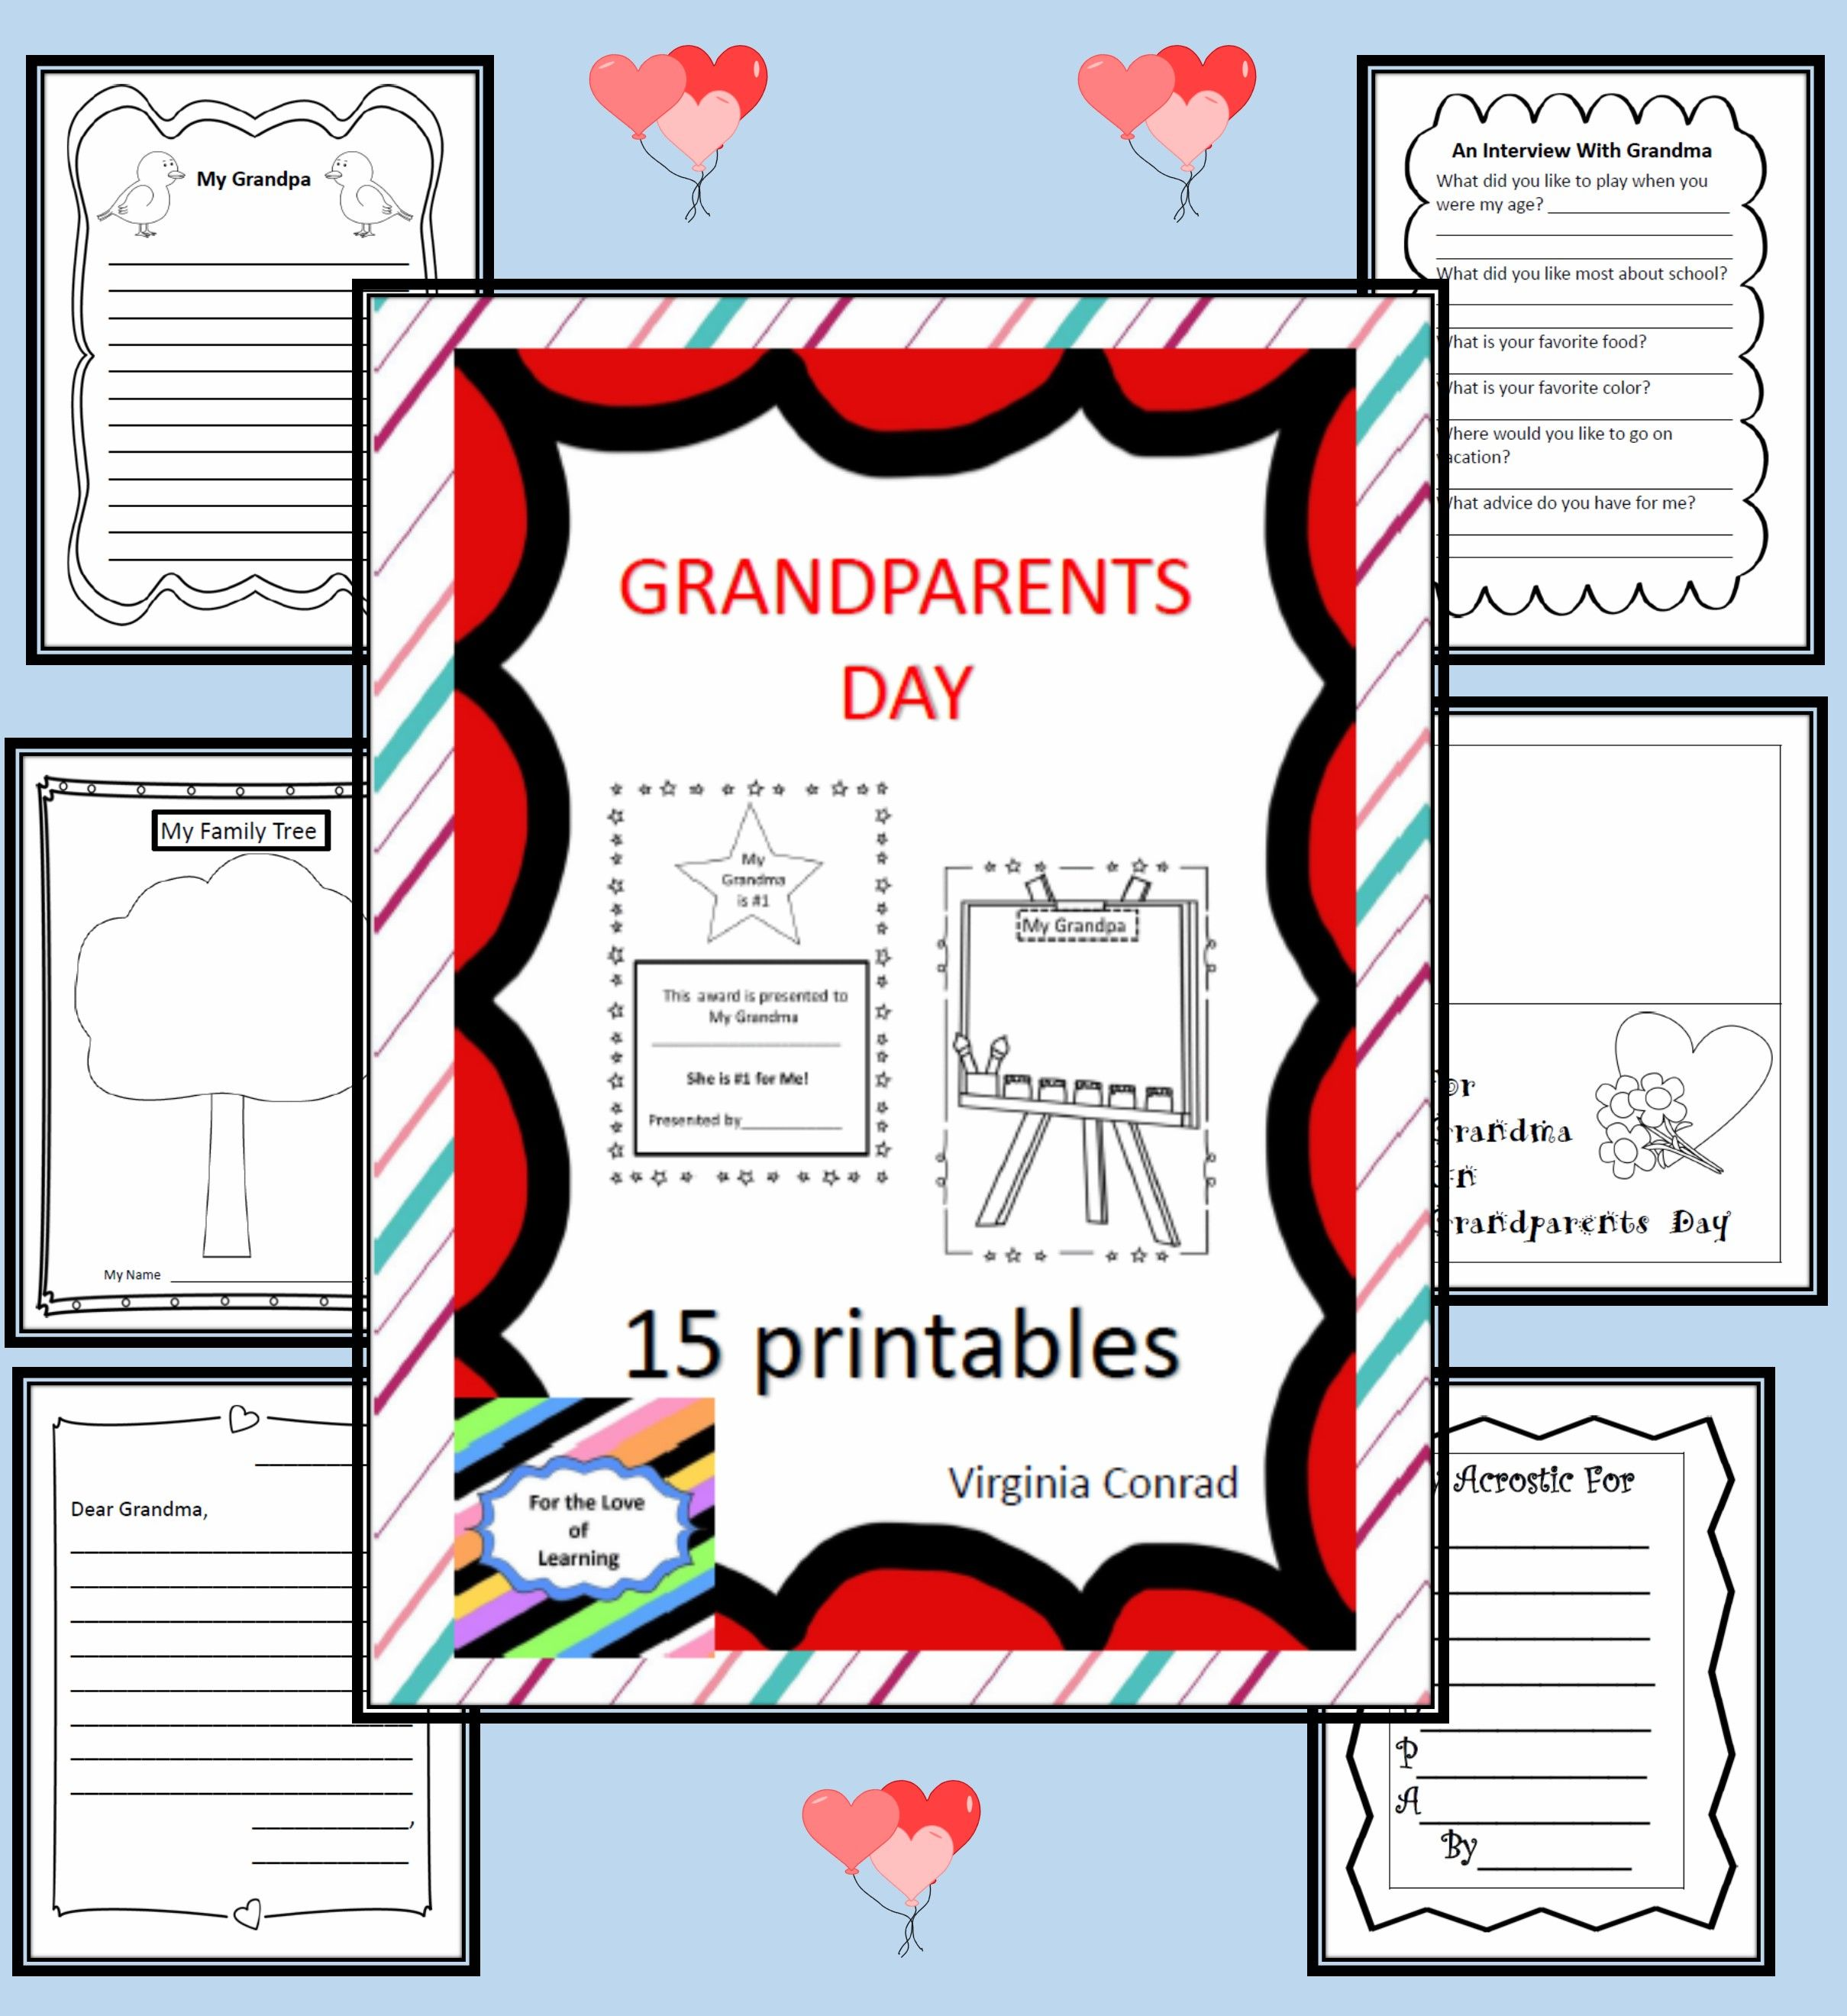 Grandparents Day 15 Printables